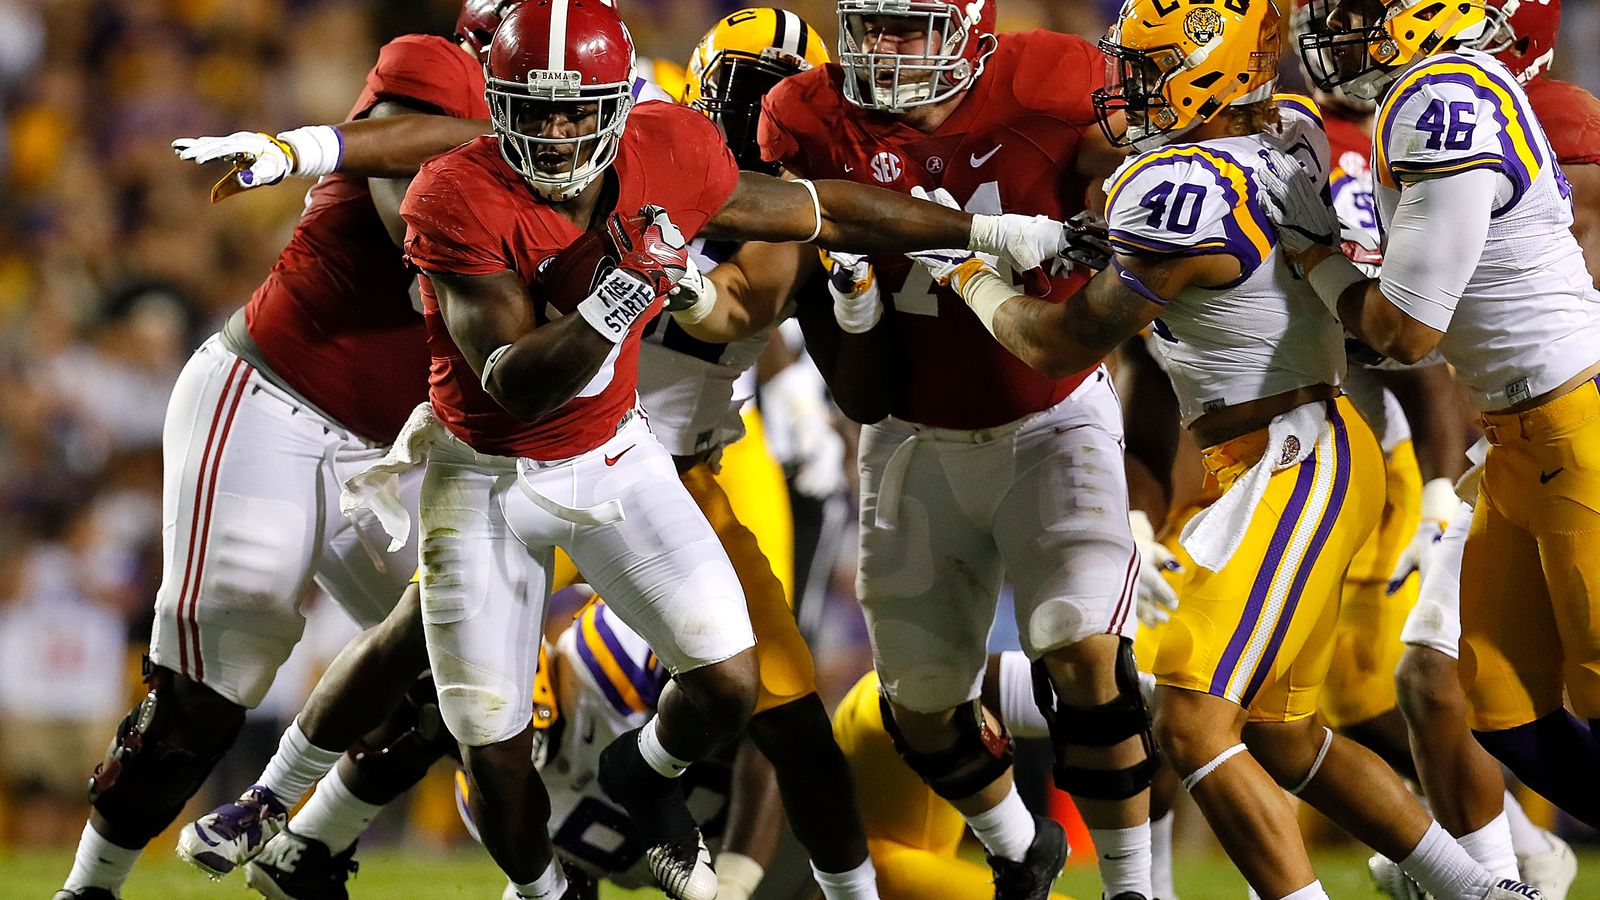 Get the latest Alabama Crimson Tide news scores stats standings rumors and more from ESPN